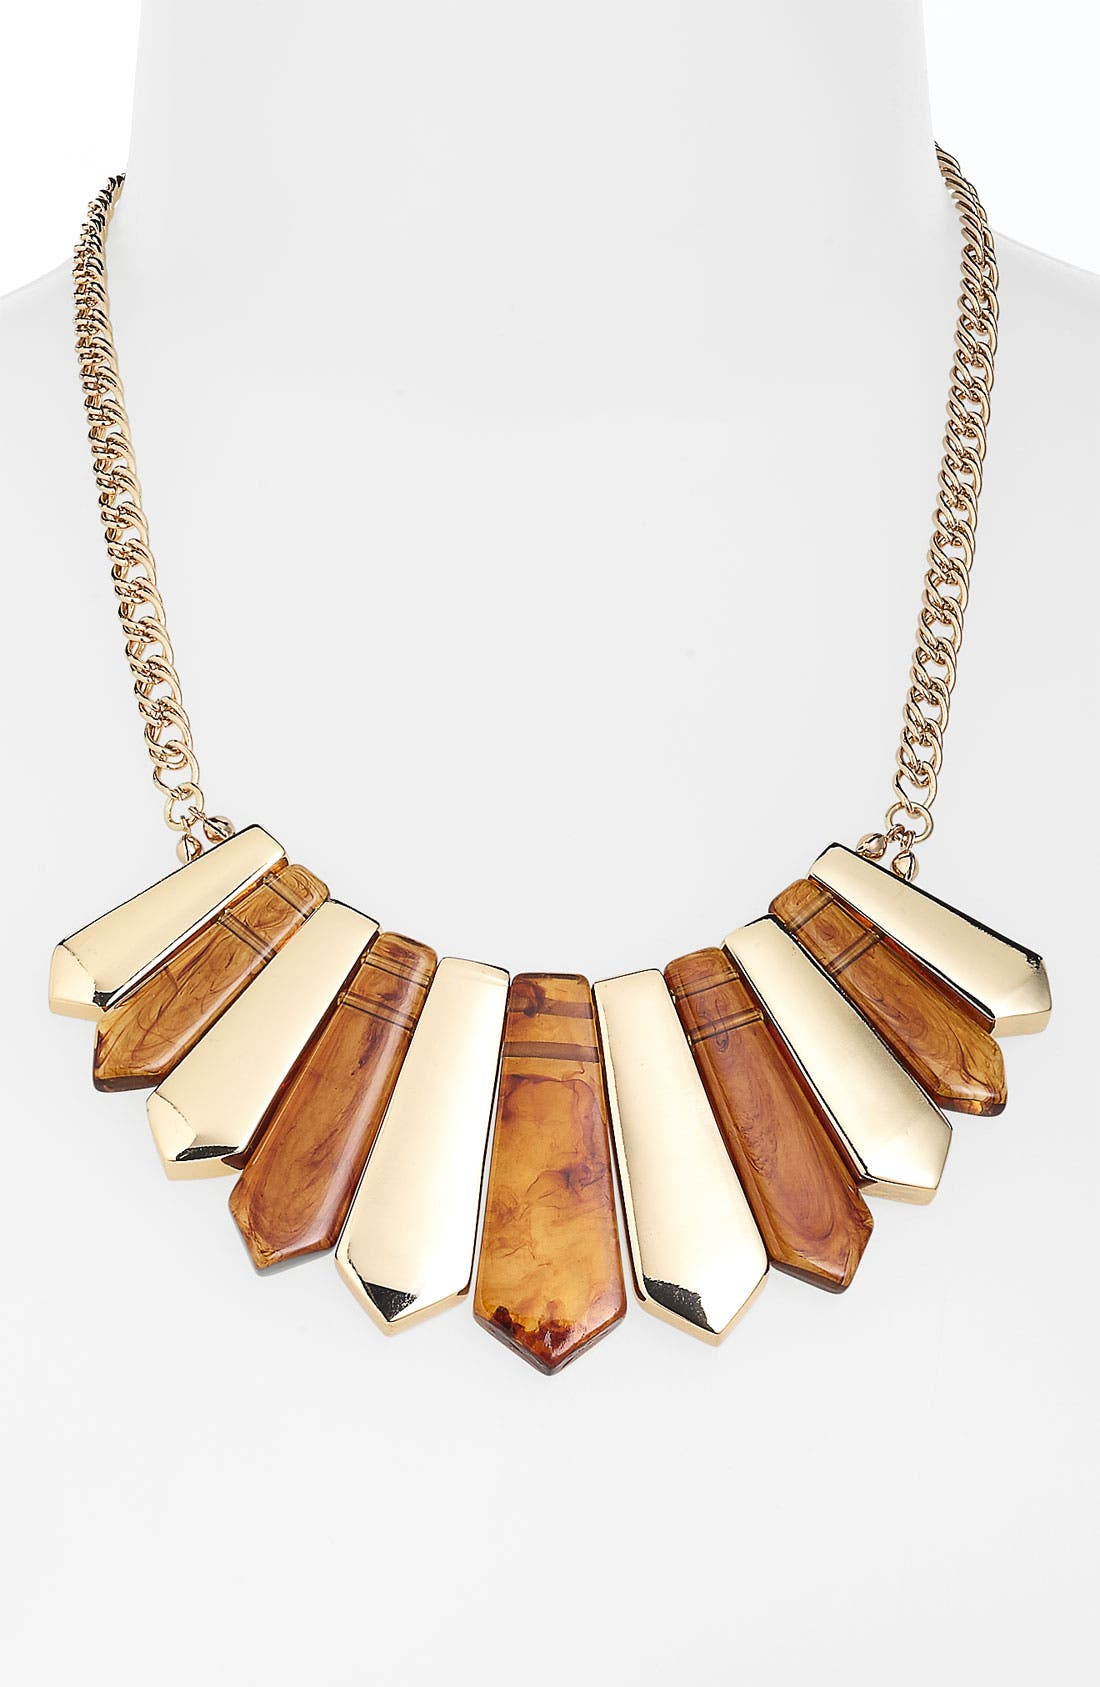 Main Image - Spring Street Design Group Resin & Metal Necklace